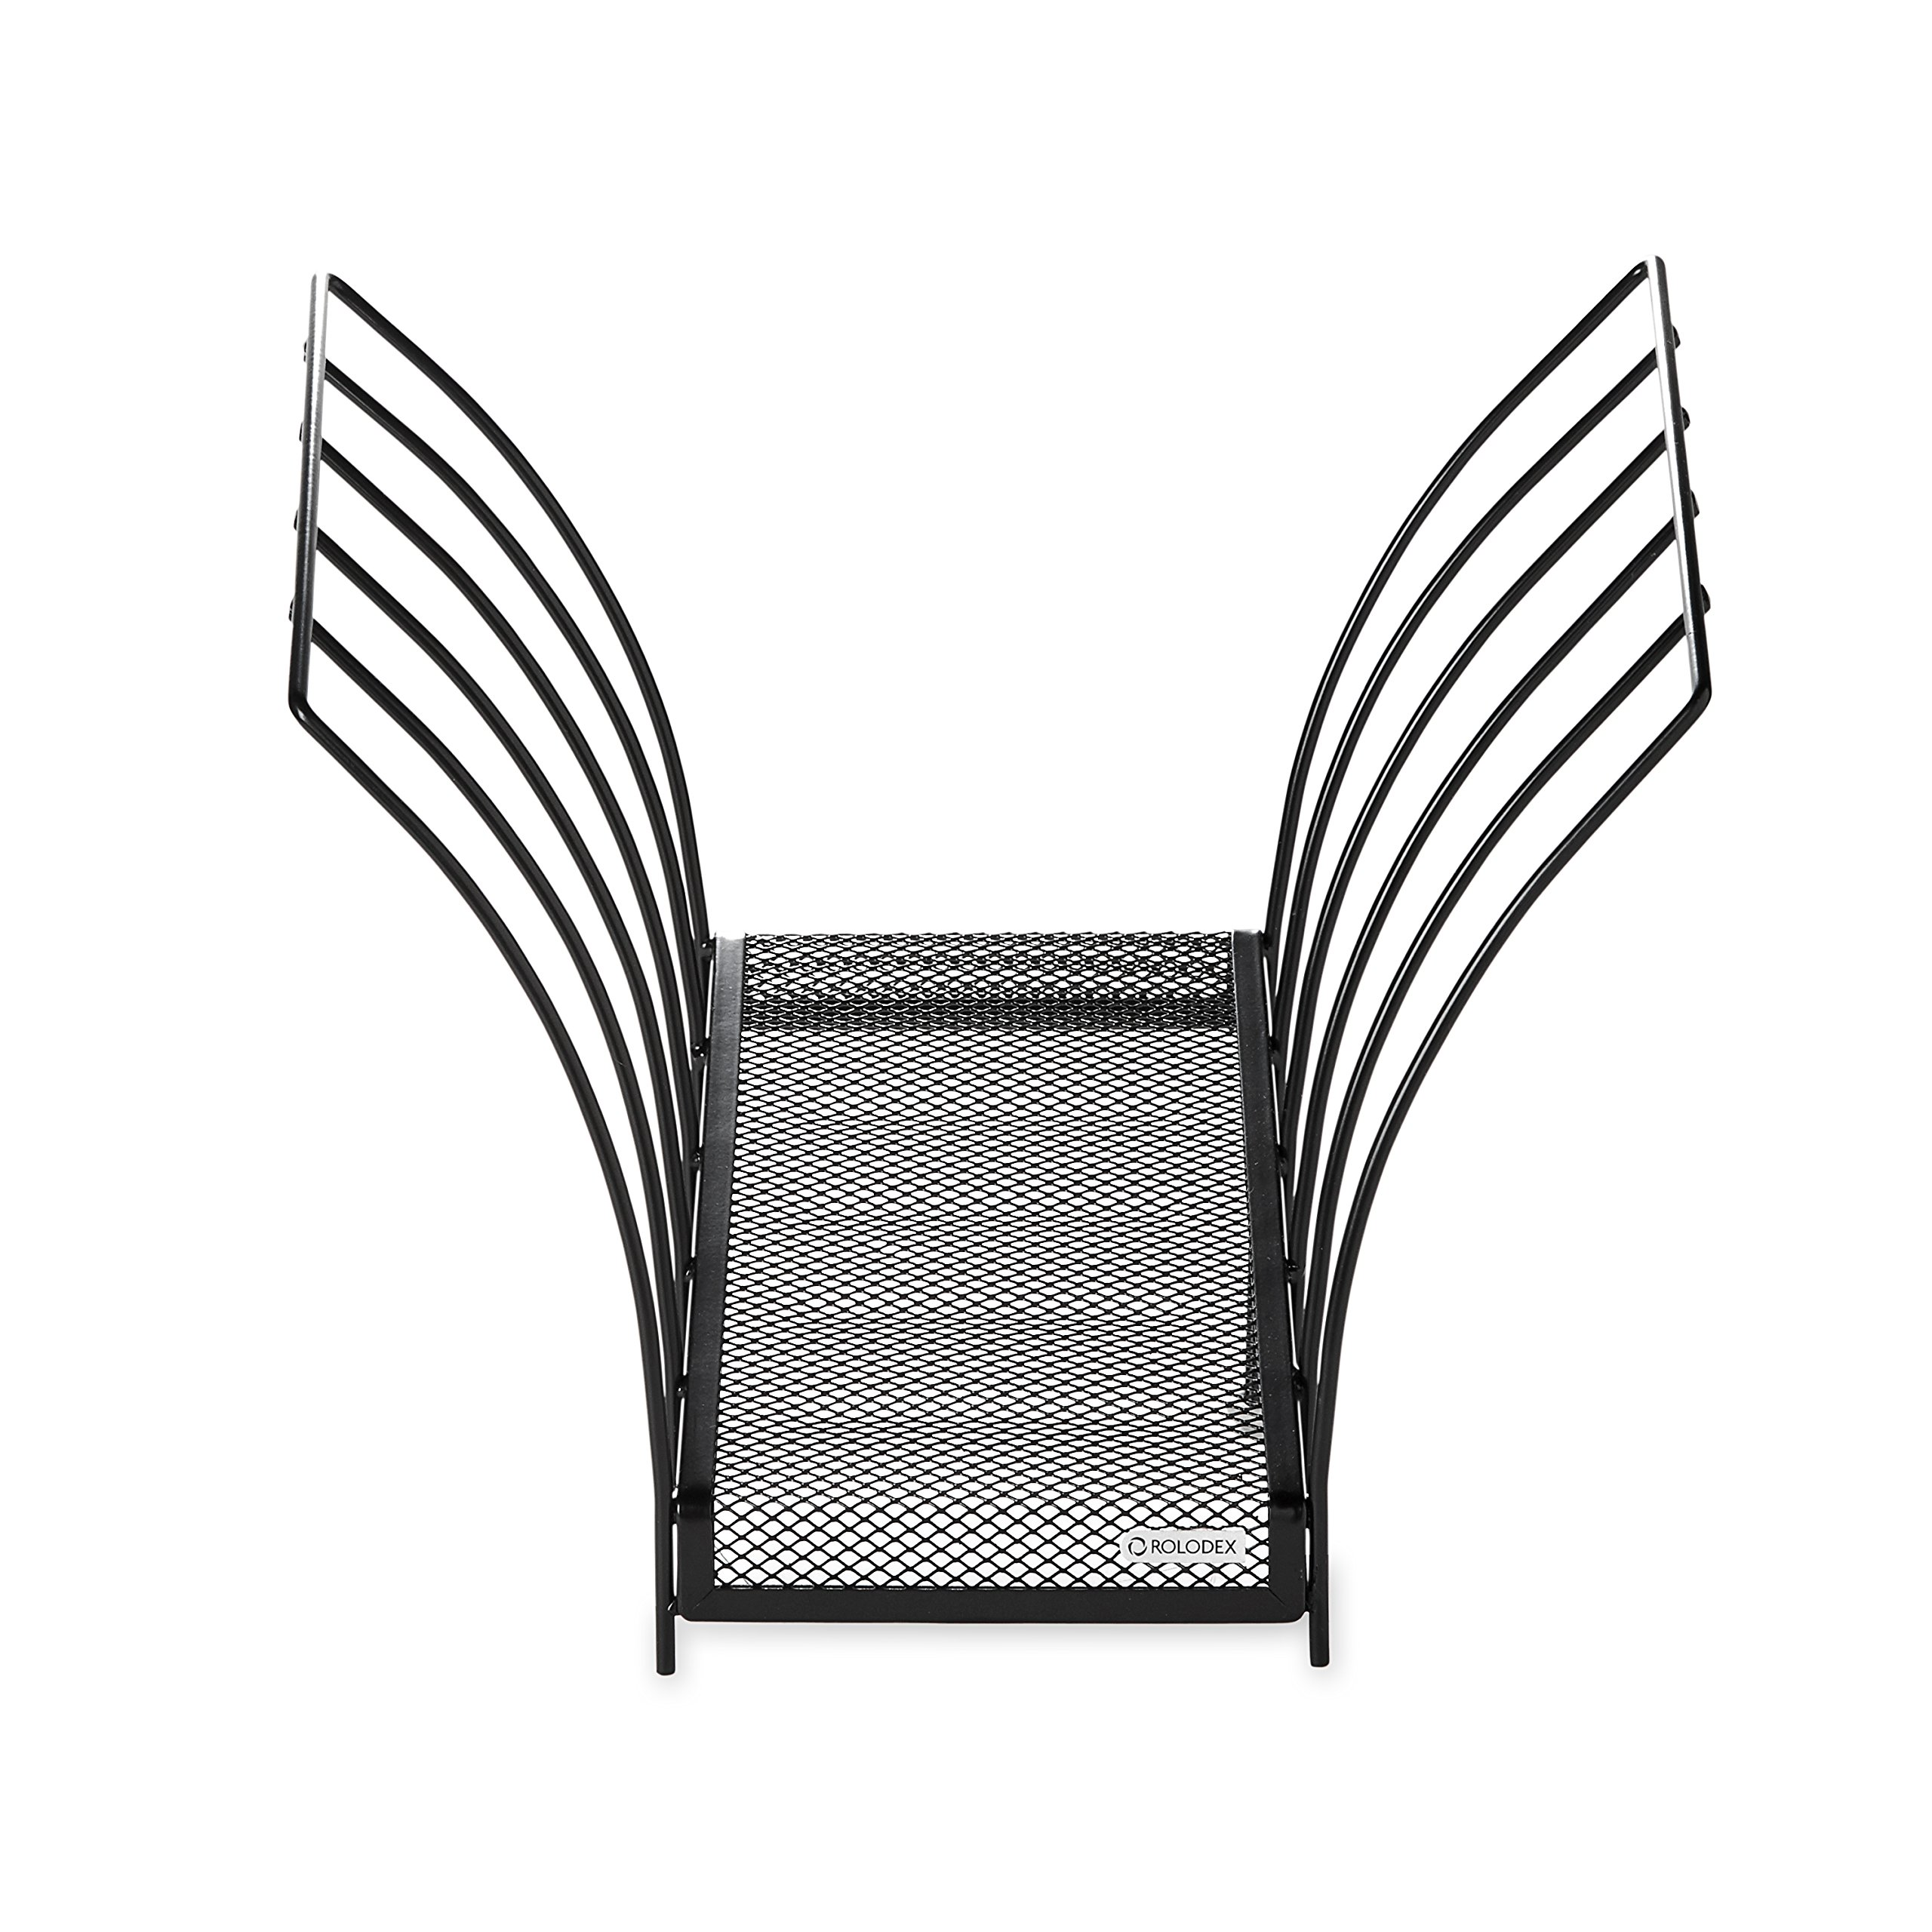 Rolodex Mesh Collection Butterfly File Holder, Letter-Size, Black (1742326)